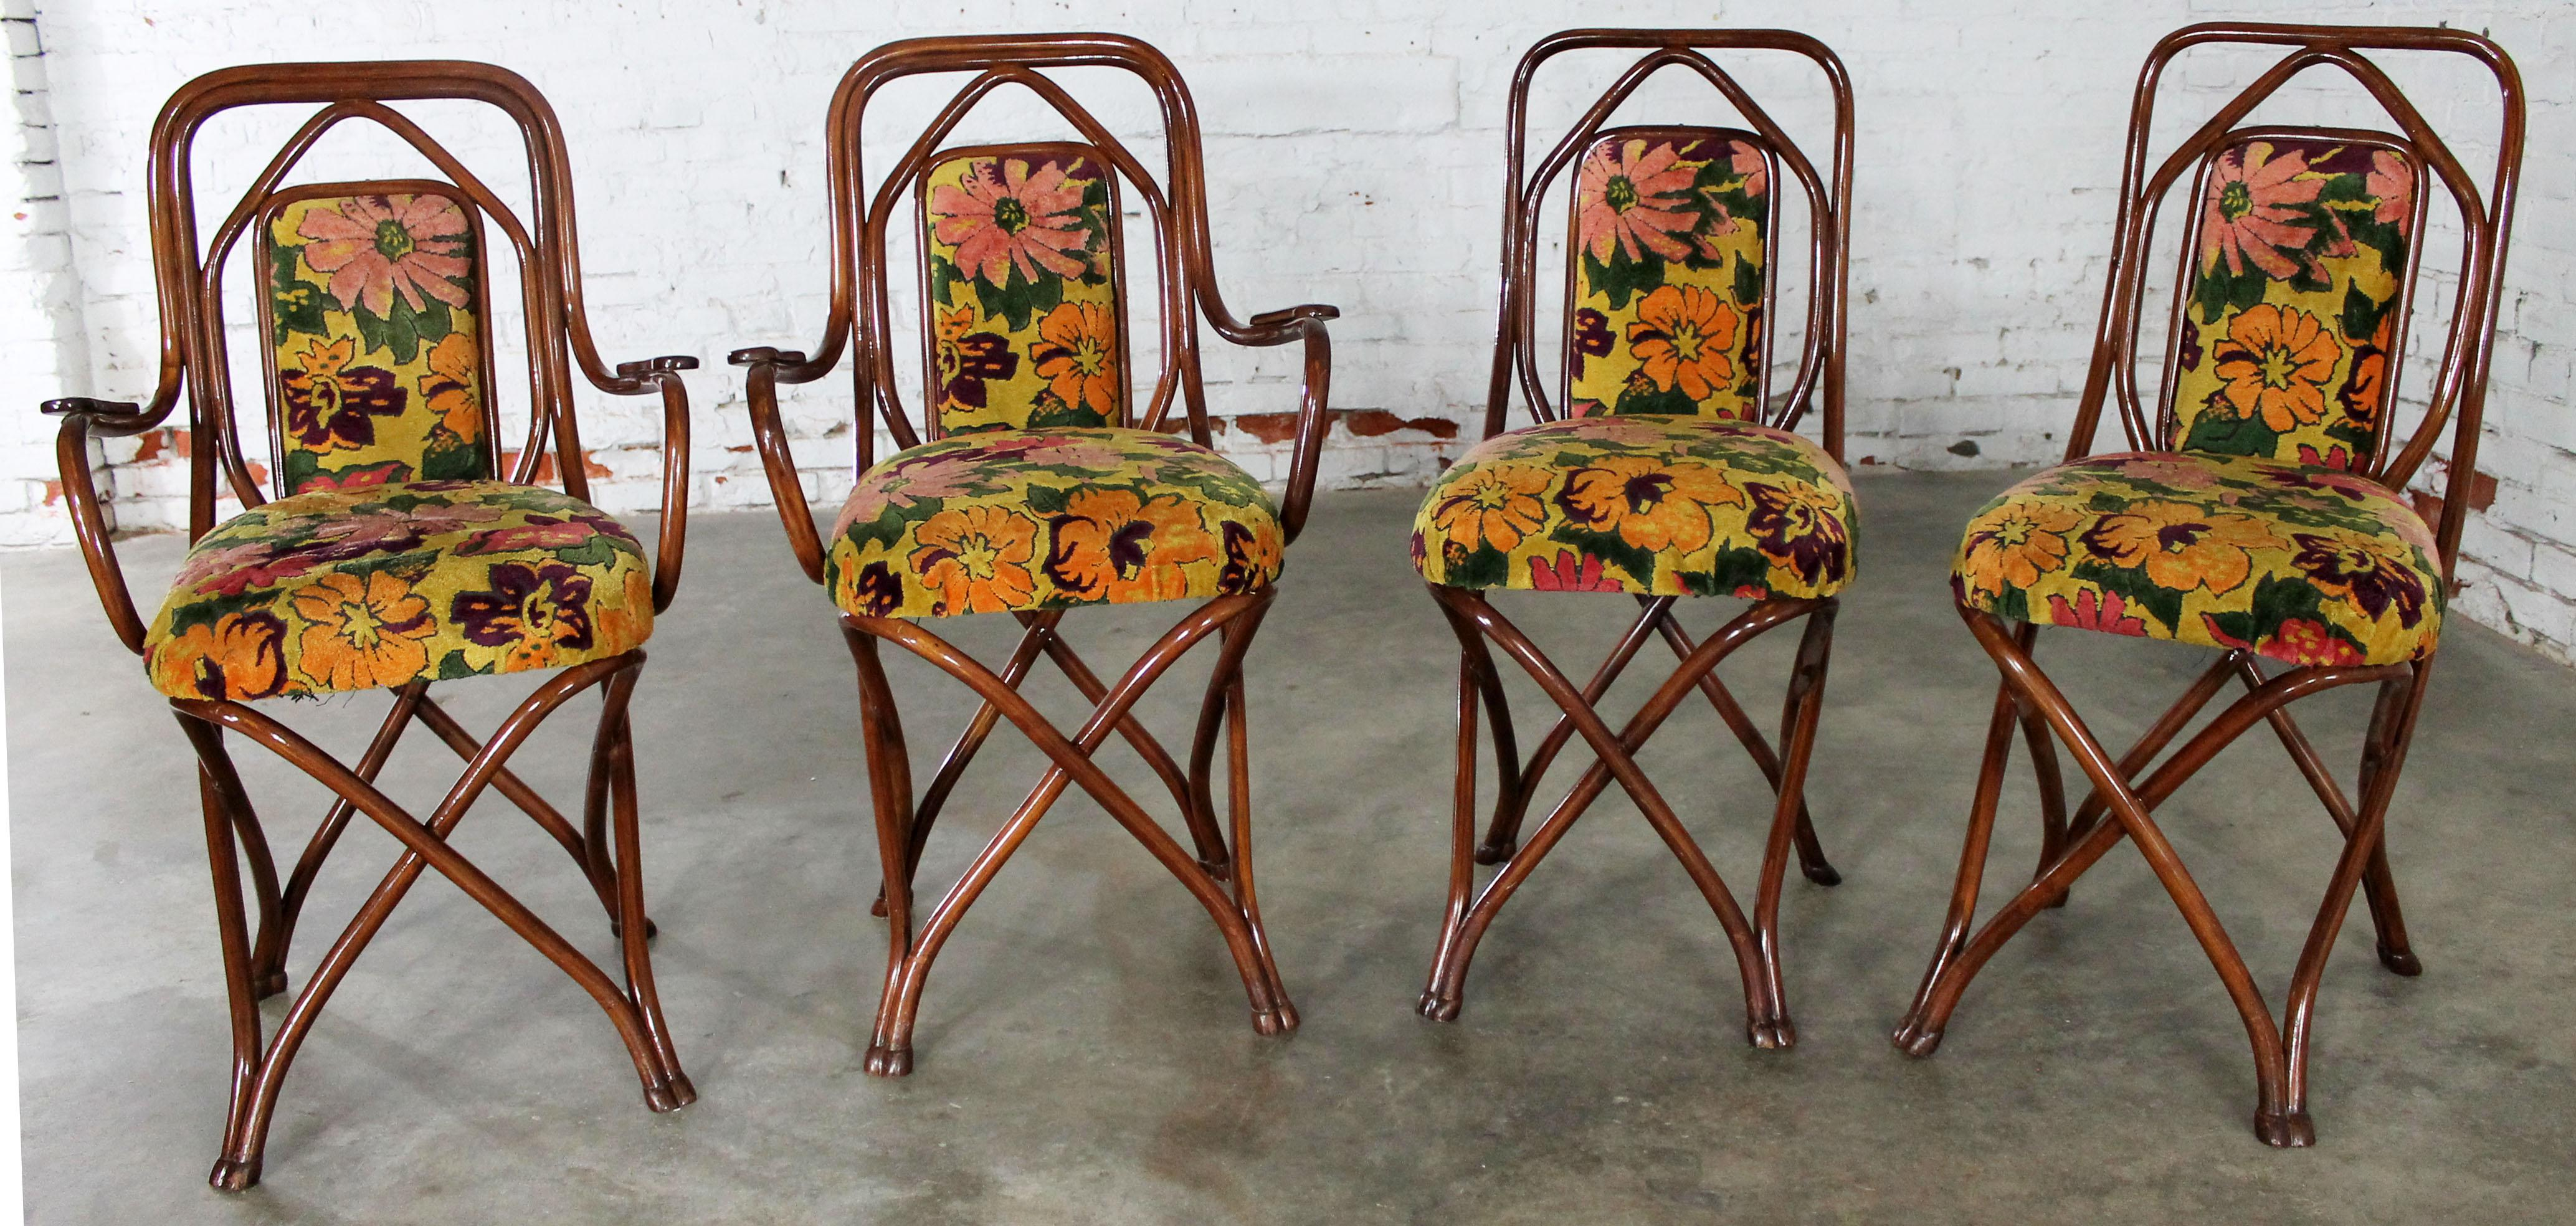 Antique Gebruder Thonet Bentwood Chairs   Set Of 4   Image 8 Of 11